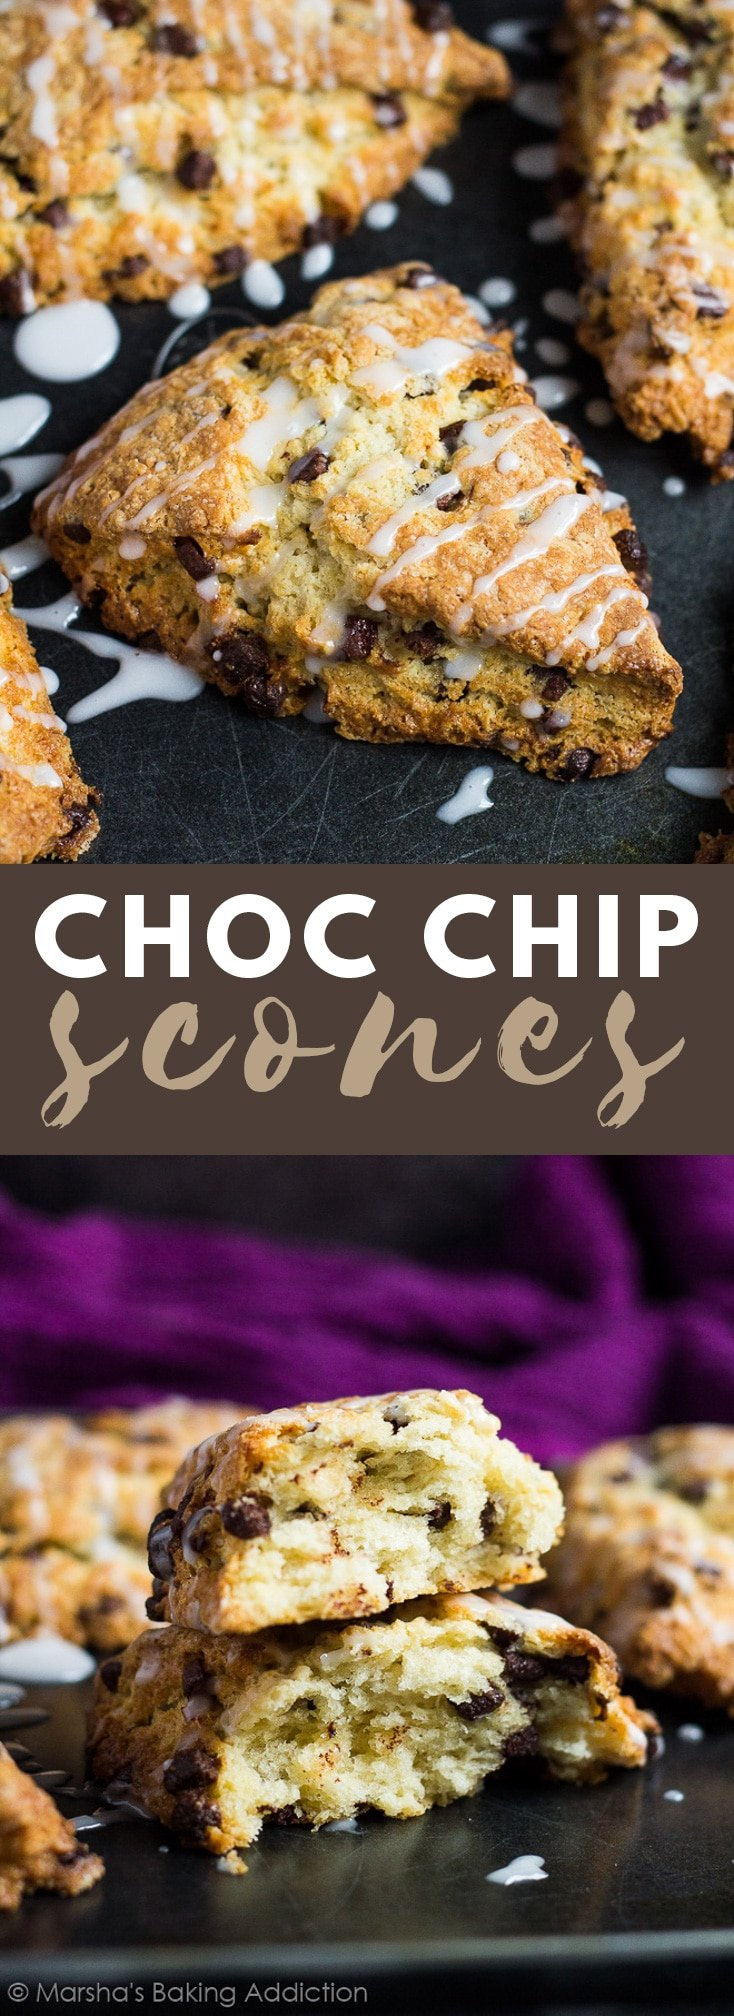 Chocolate Chip Scones - Deliciously moist, fluffy and tender vanilla scones stuffed full of chocolate chips, and drizzled with a sweet glaze! #chocolatechip #scones #breadrecipes #breakfastrecipes